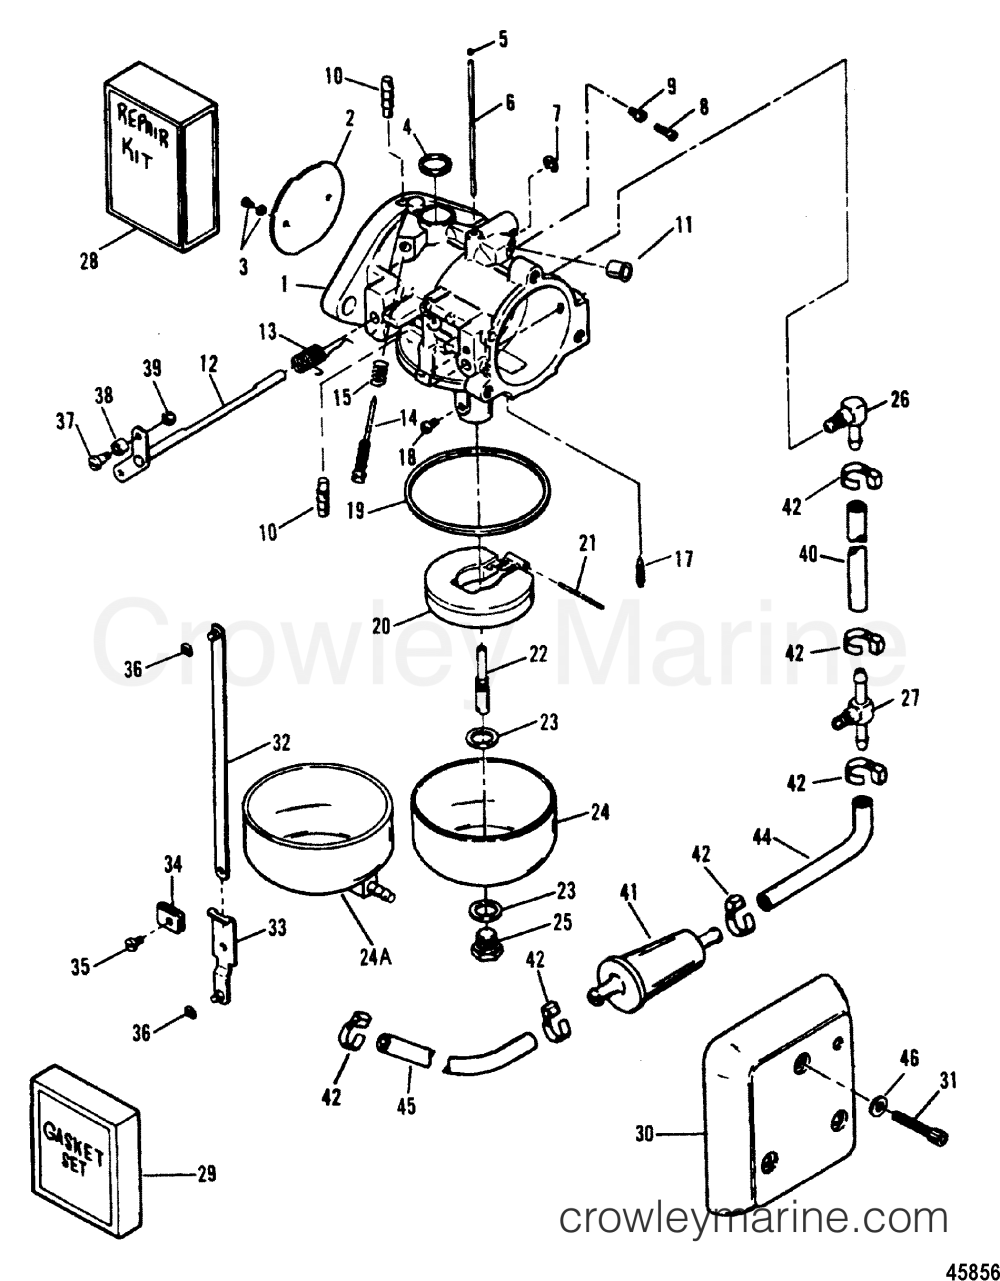 medium resolution of wiring diagram for 50 hp mercury outboard wiring diagram mercury carburetor diagram mercury force 40 hp wiring diagram